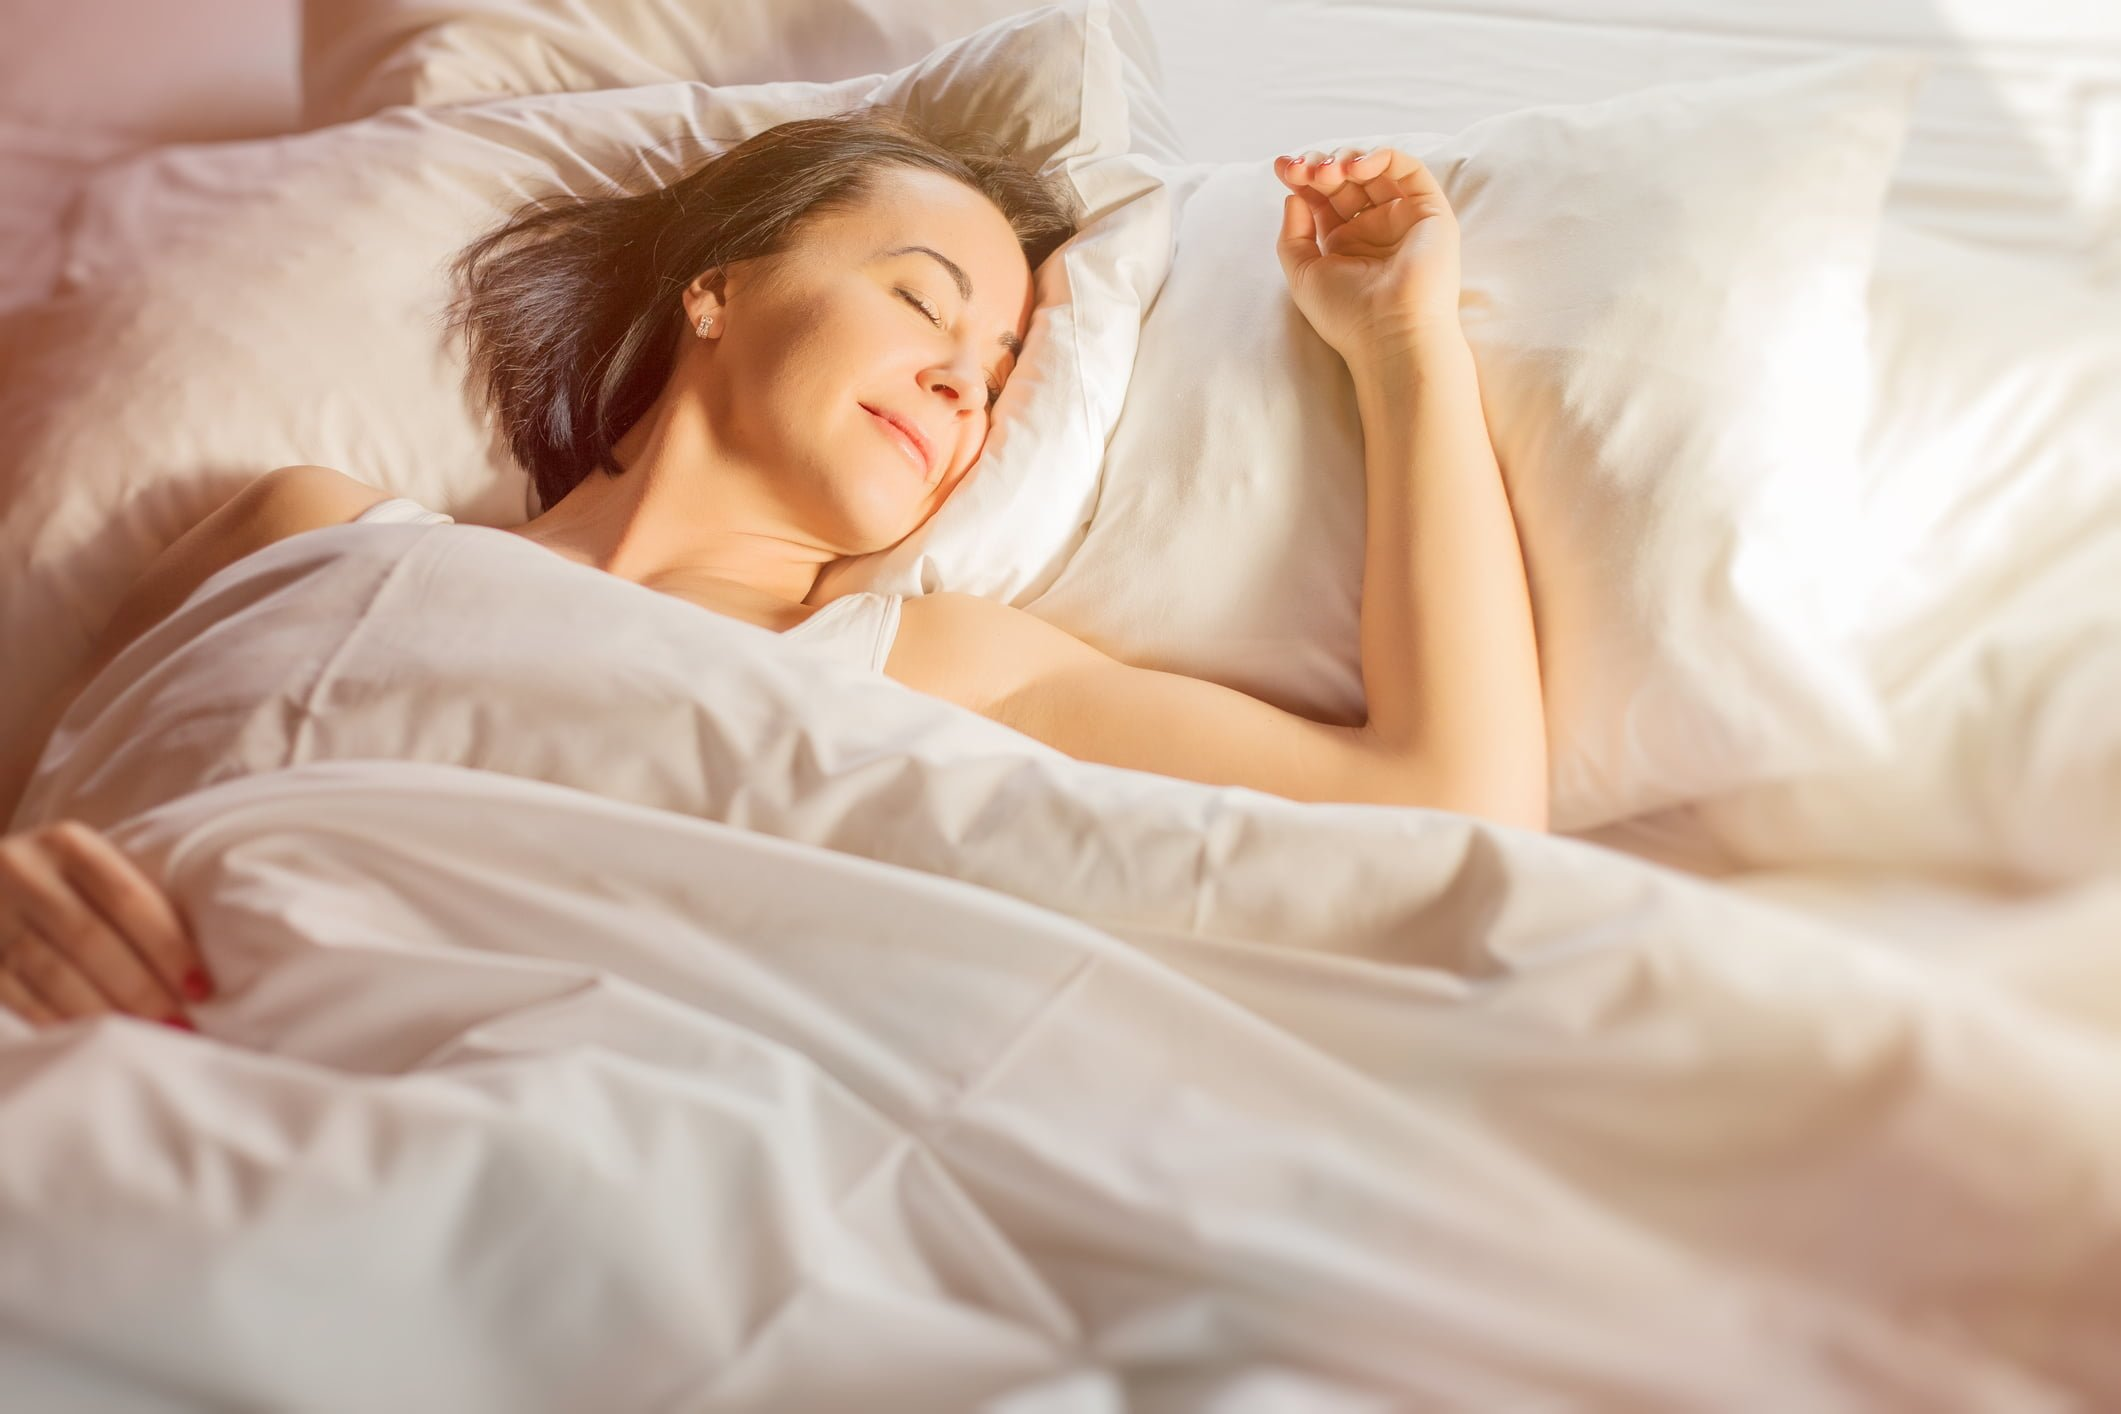 Is it Better to Sleep With or Without a Pillow?